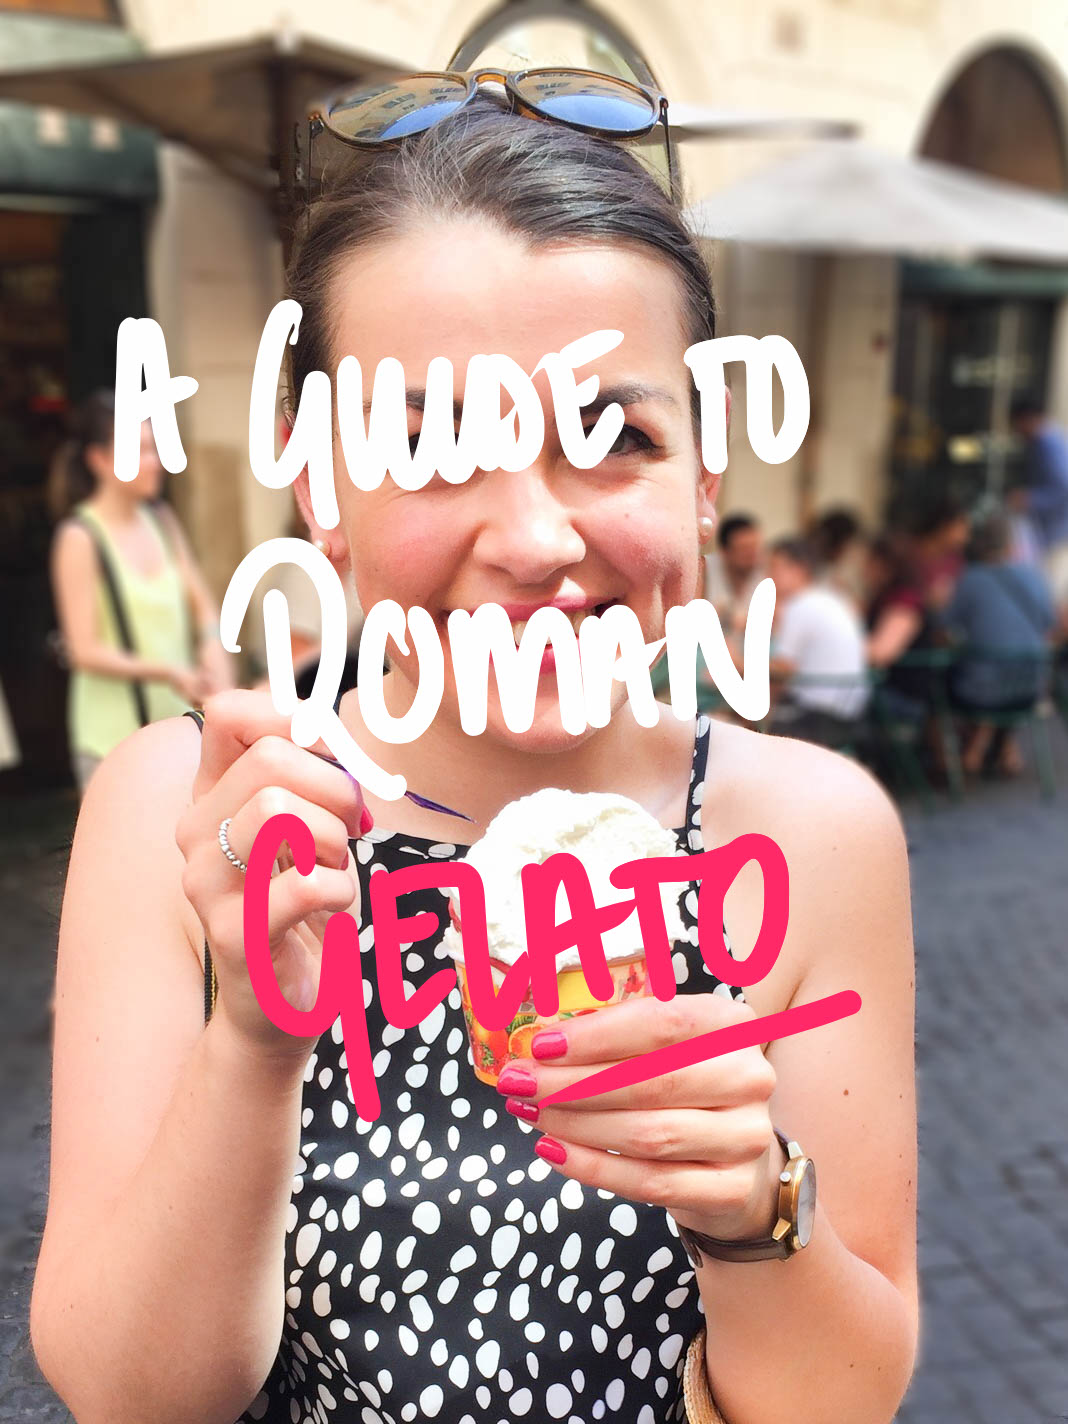 Where to find the best gelato in Rome, up now on carryoncaroline.com